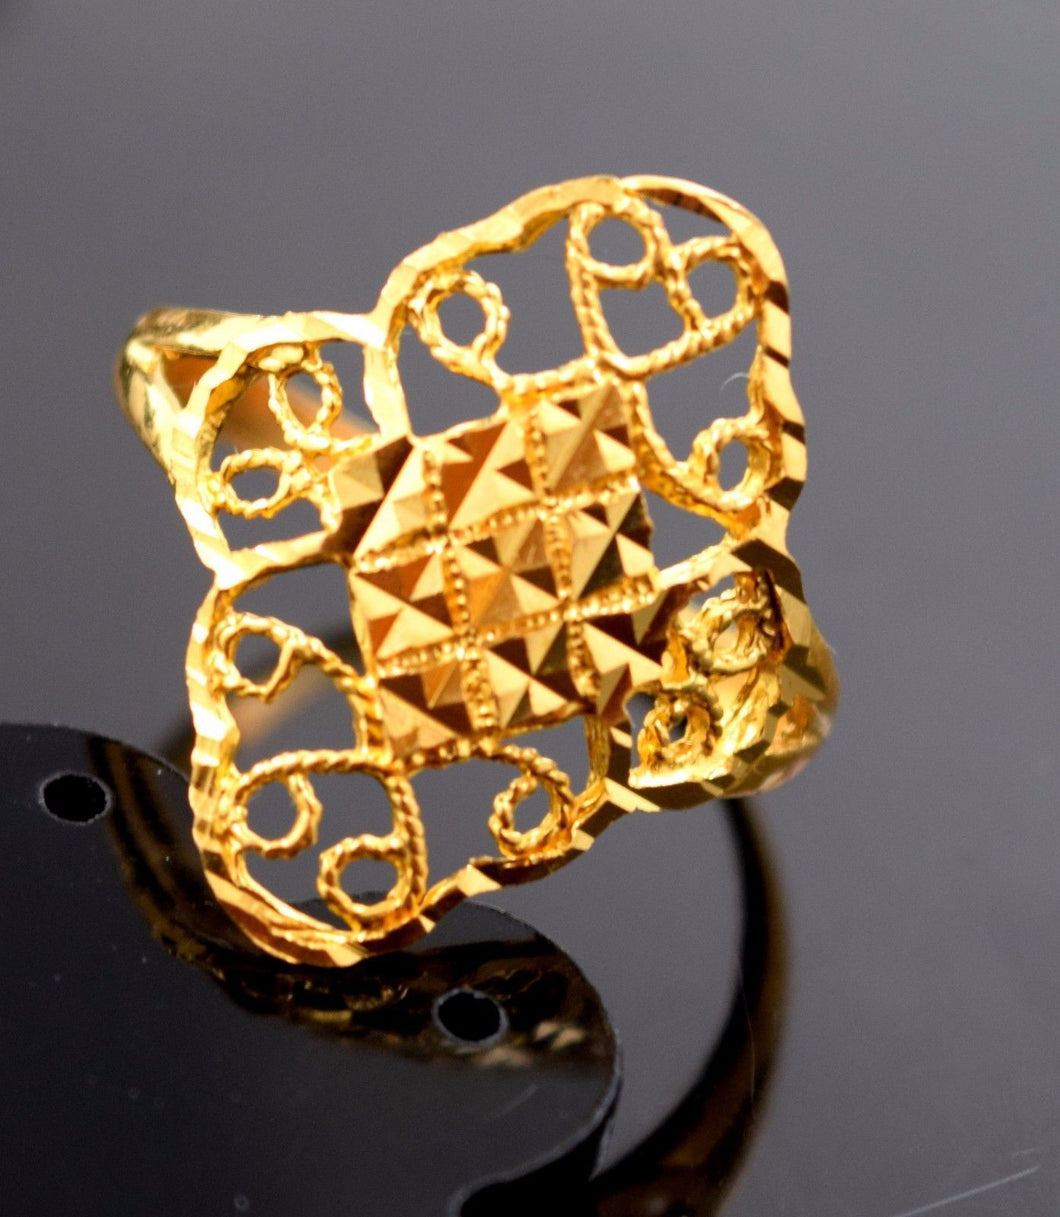 22k Jewelry Solid Gold ELEGANT Ring Classic Design